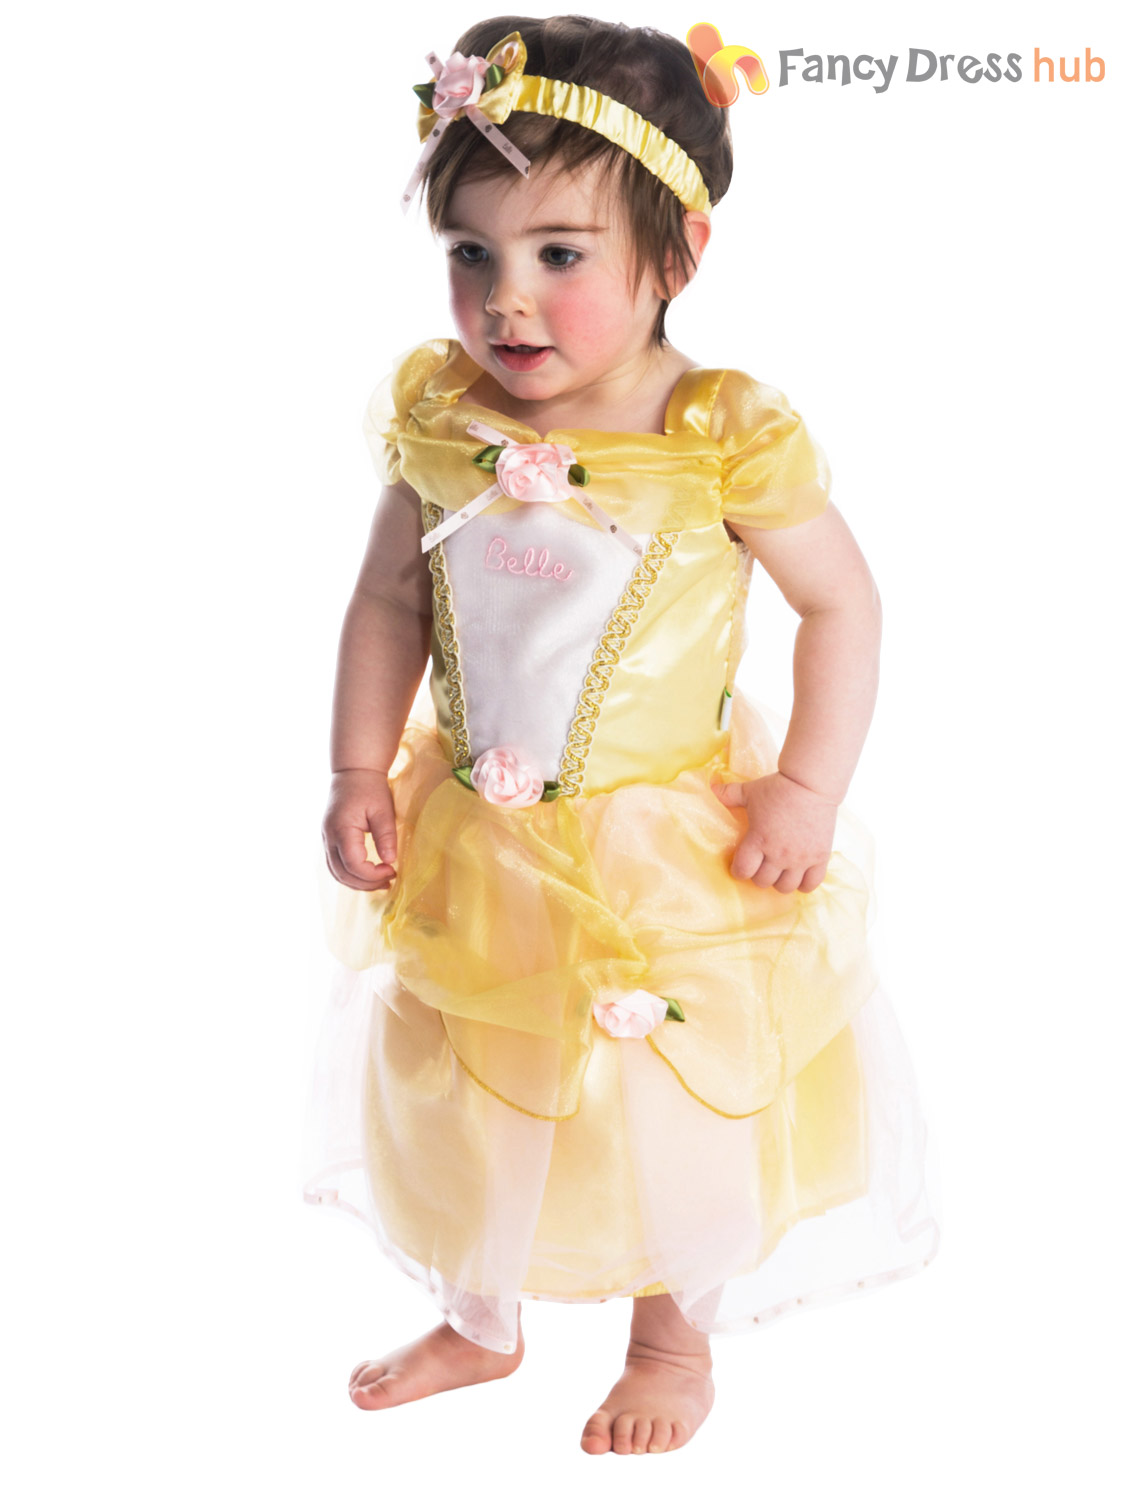 Talk about costumes with character! These Disney dress-up favorites will enthrall and delight.